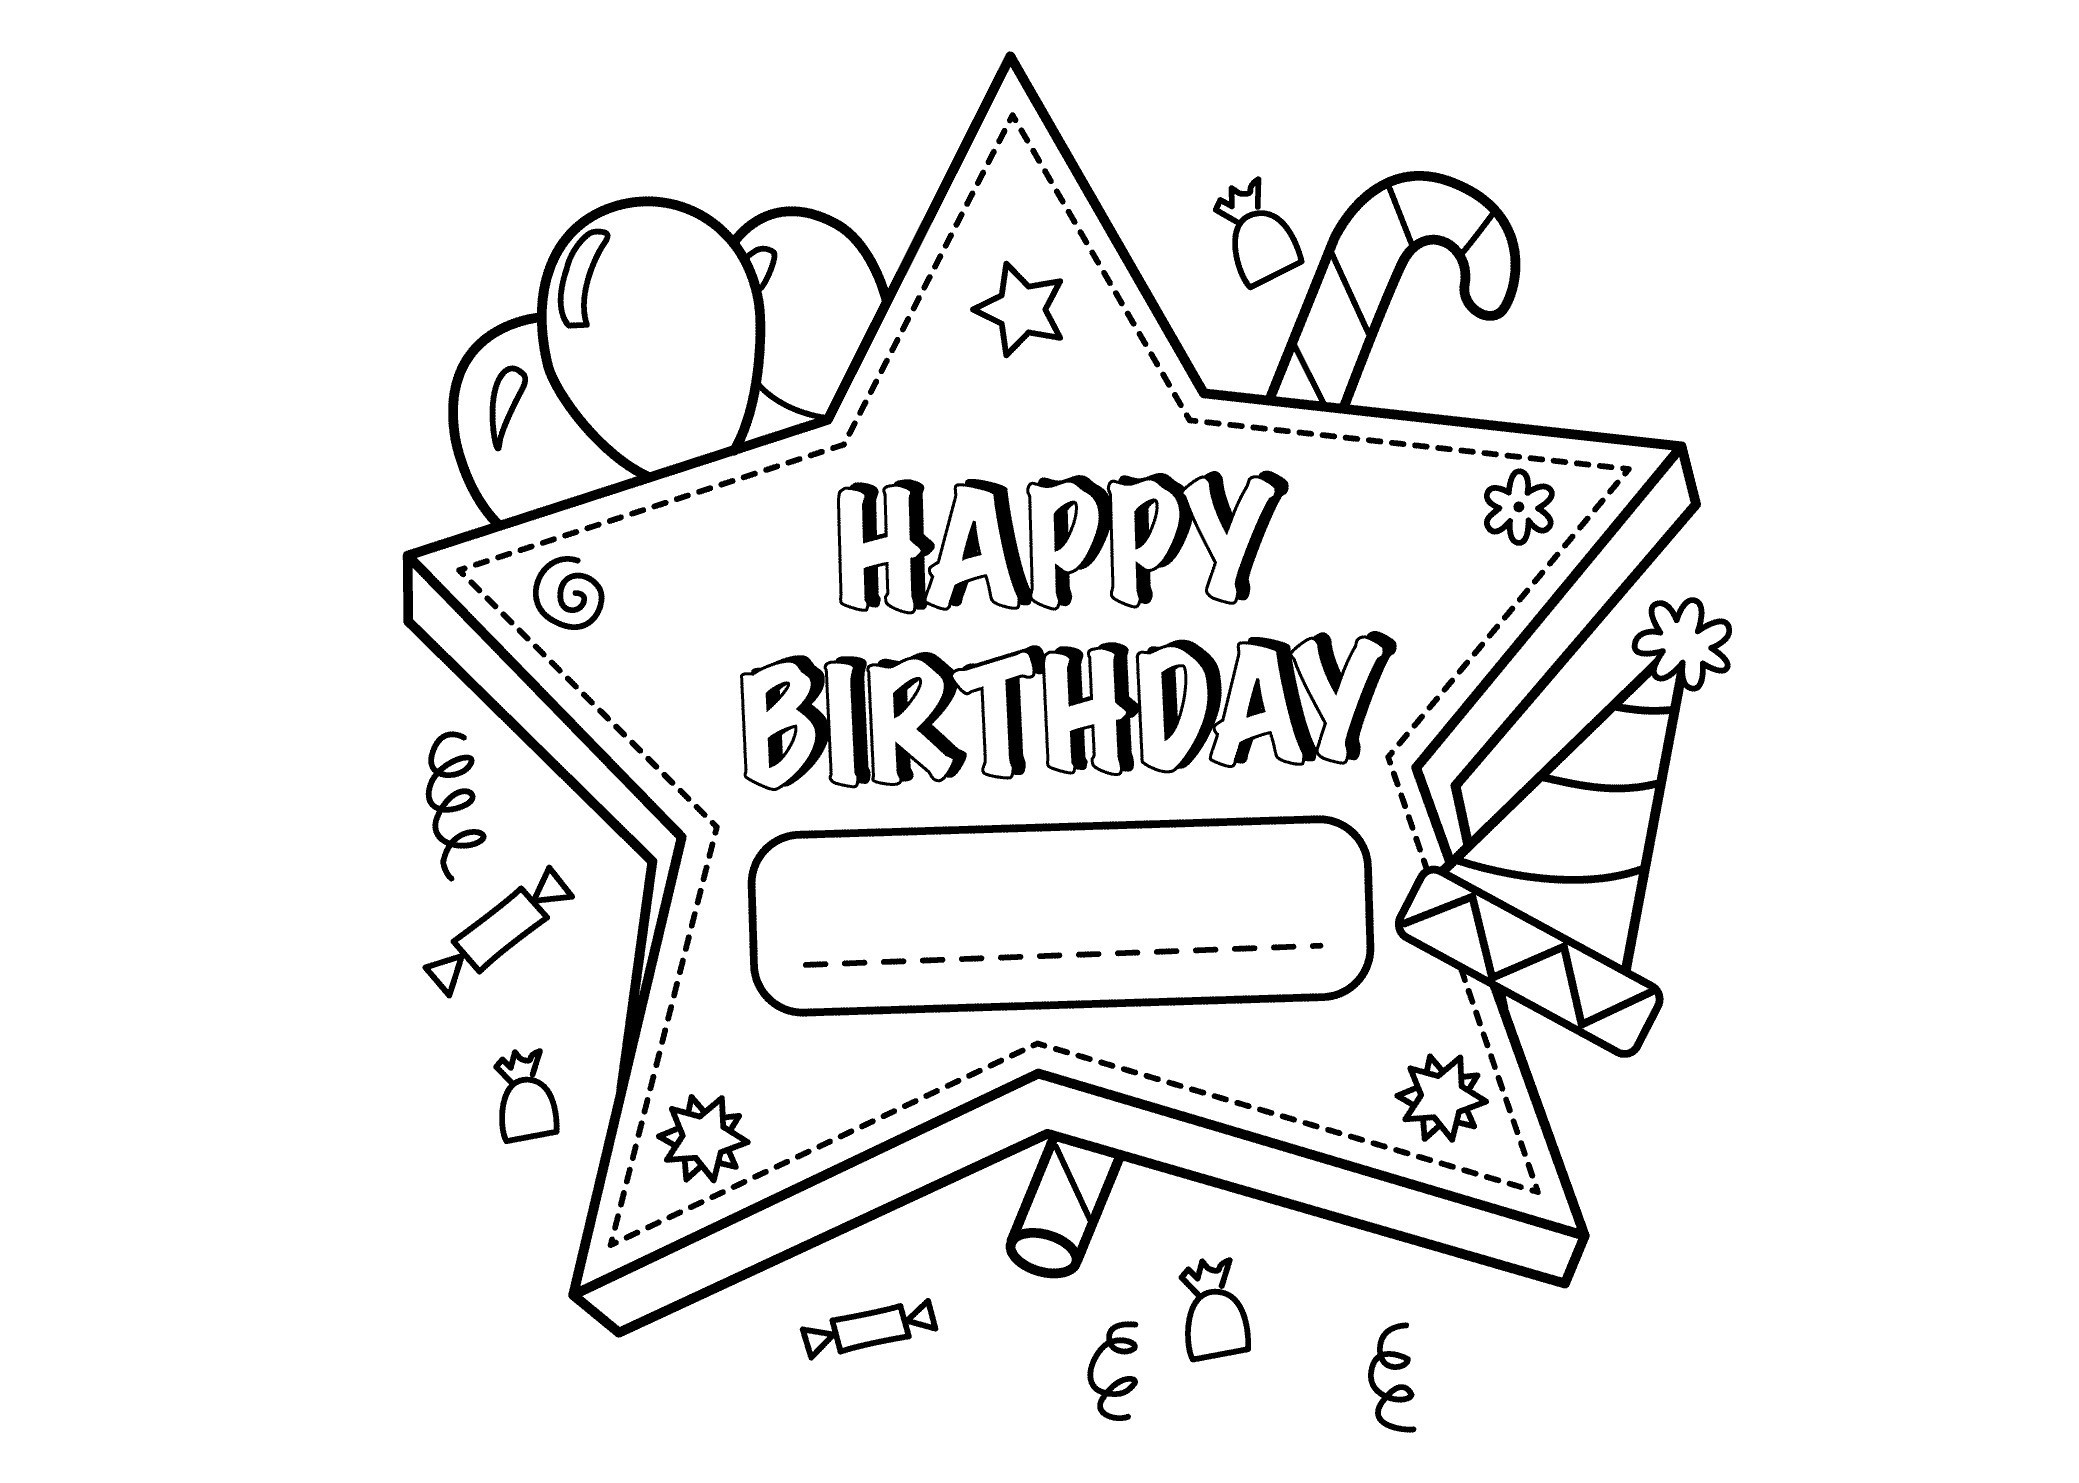 Personalized Happy Birthday Coloring Pages  to Print 19b - To print for your project